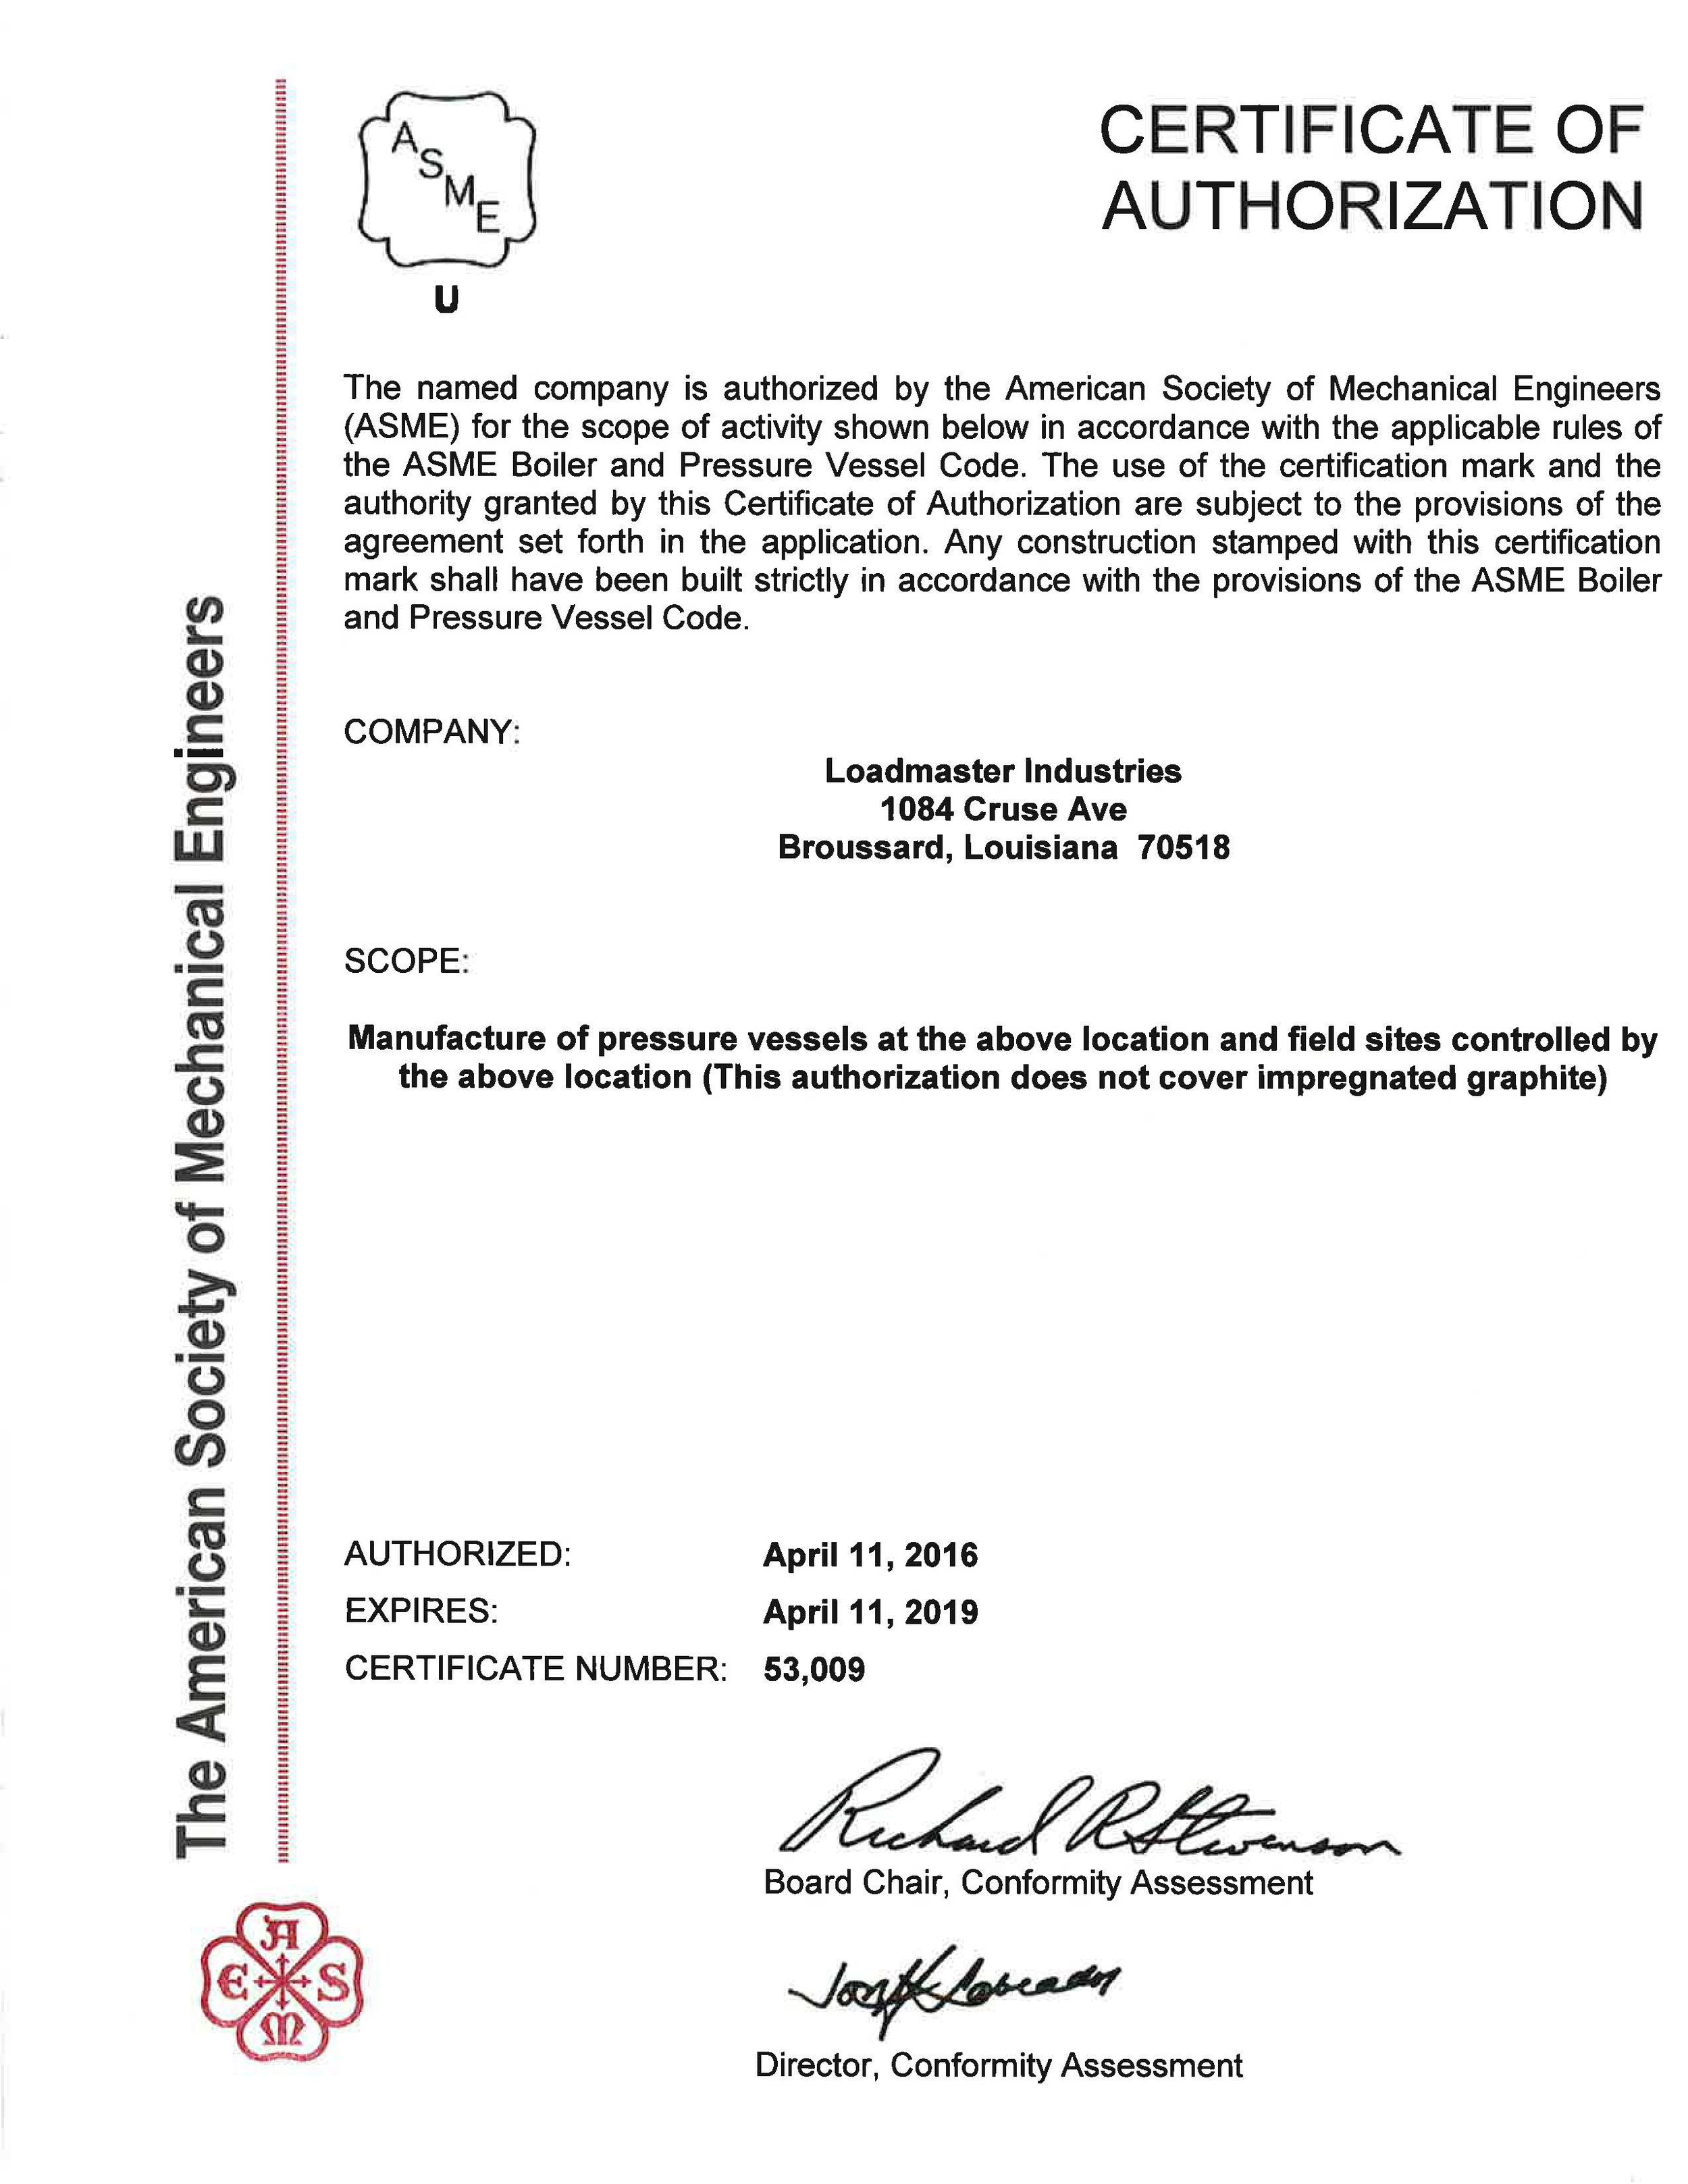 ASME Certificate of Authorization - Pressure Vessels.jpg